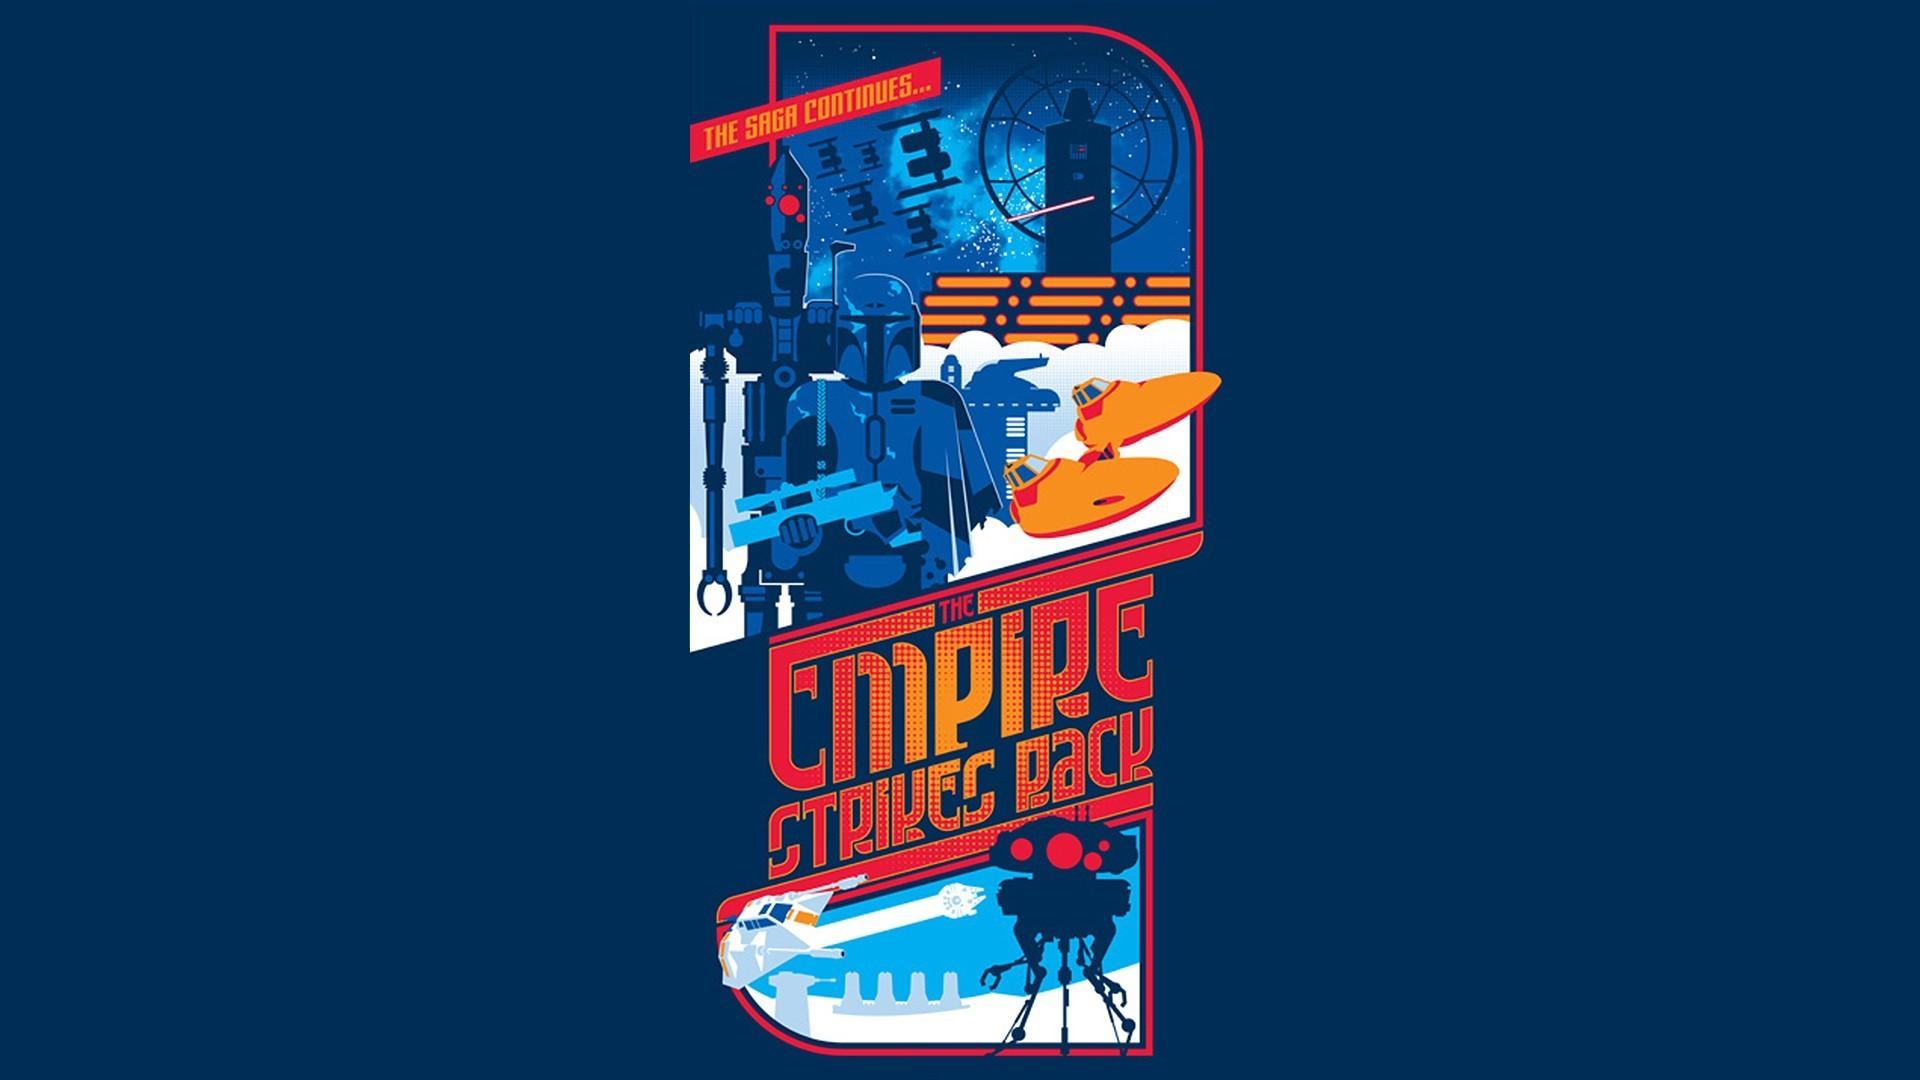 Star Wars Empire Strikes Back Wallpapers